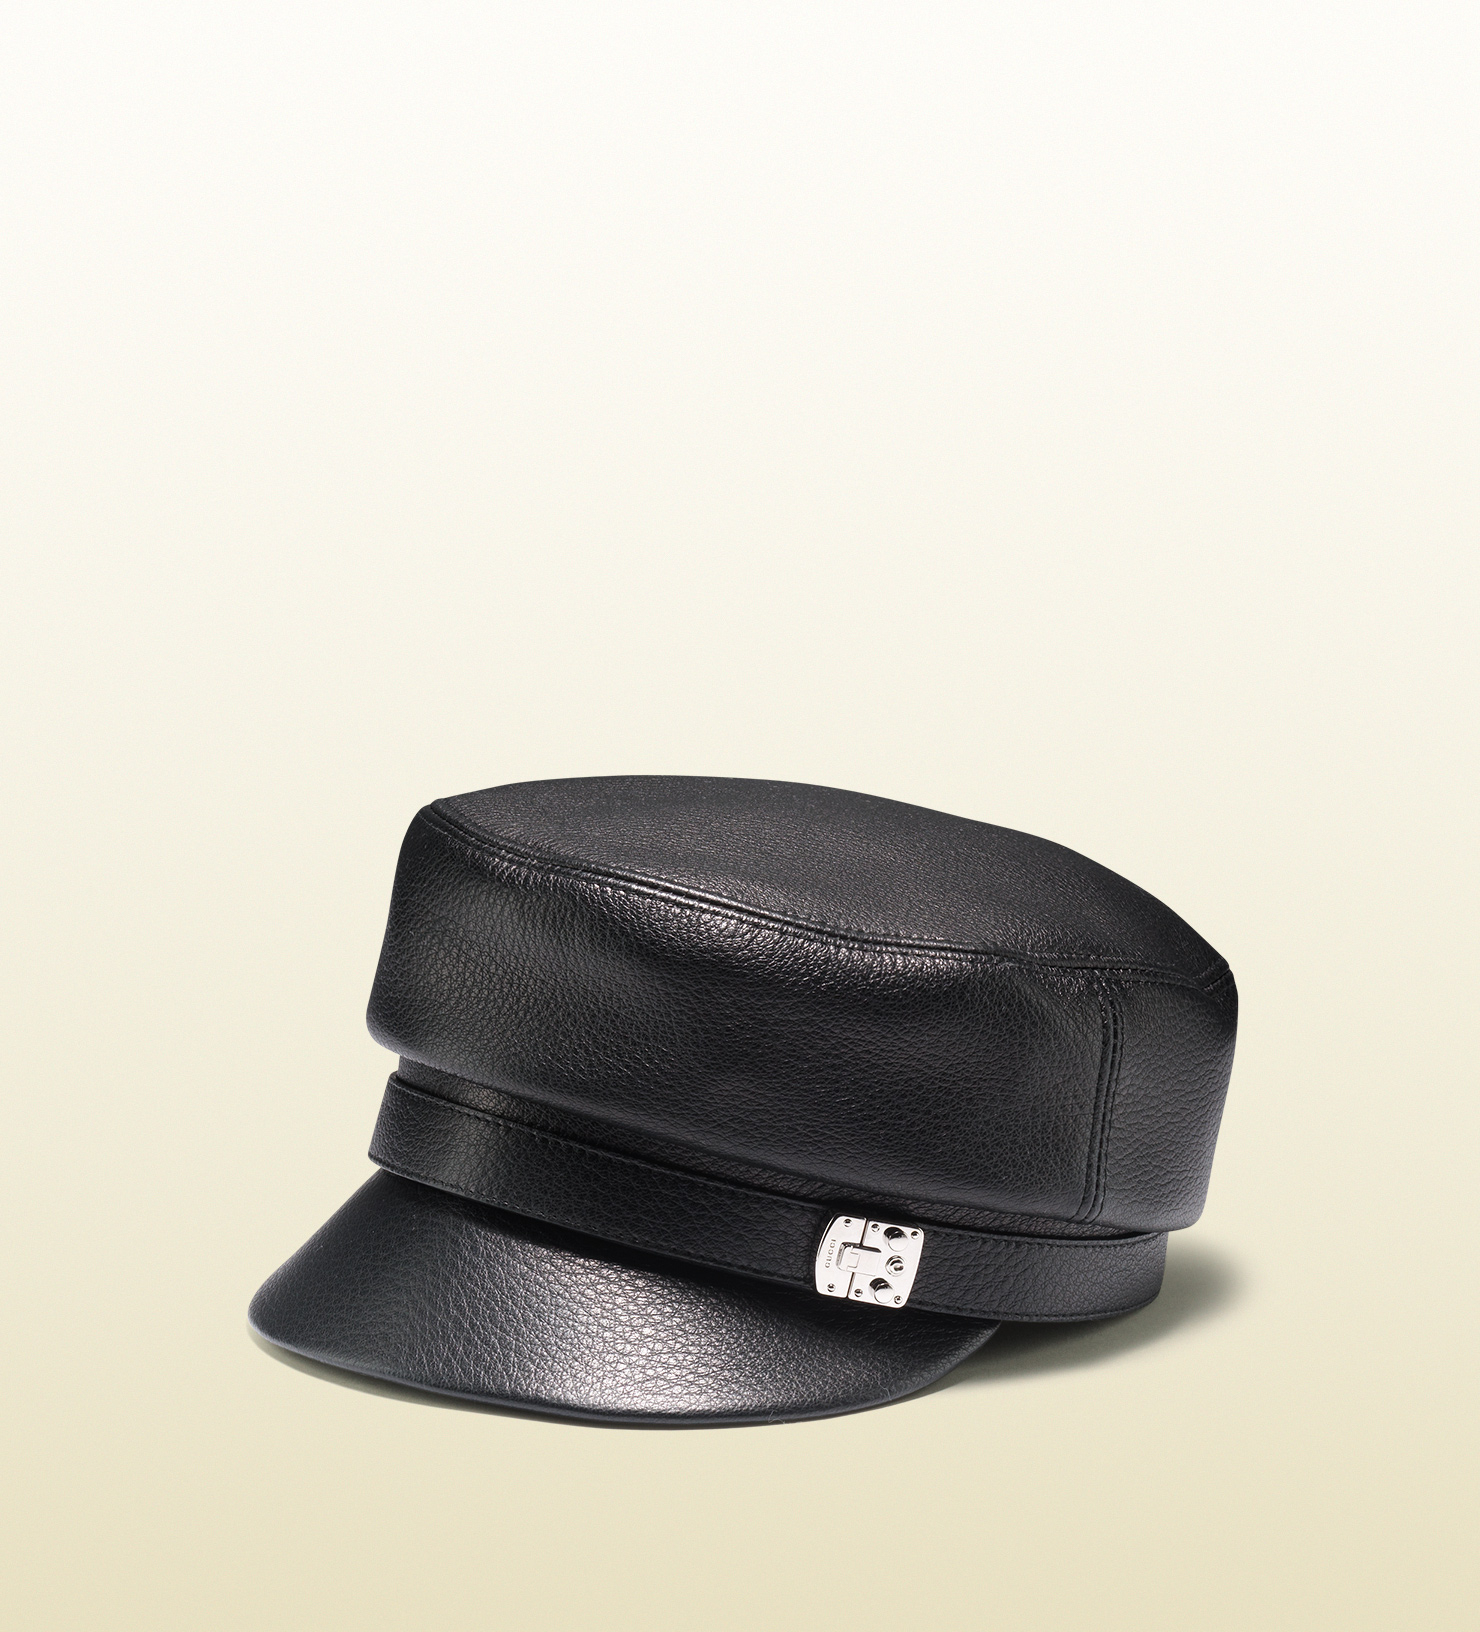 aa239297 Gucci Leather Driver Cap in Black for Men - Lyst